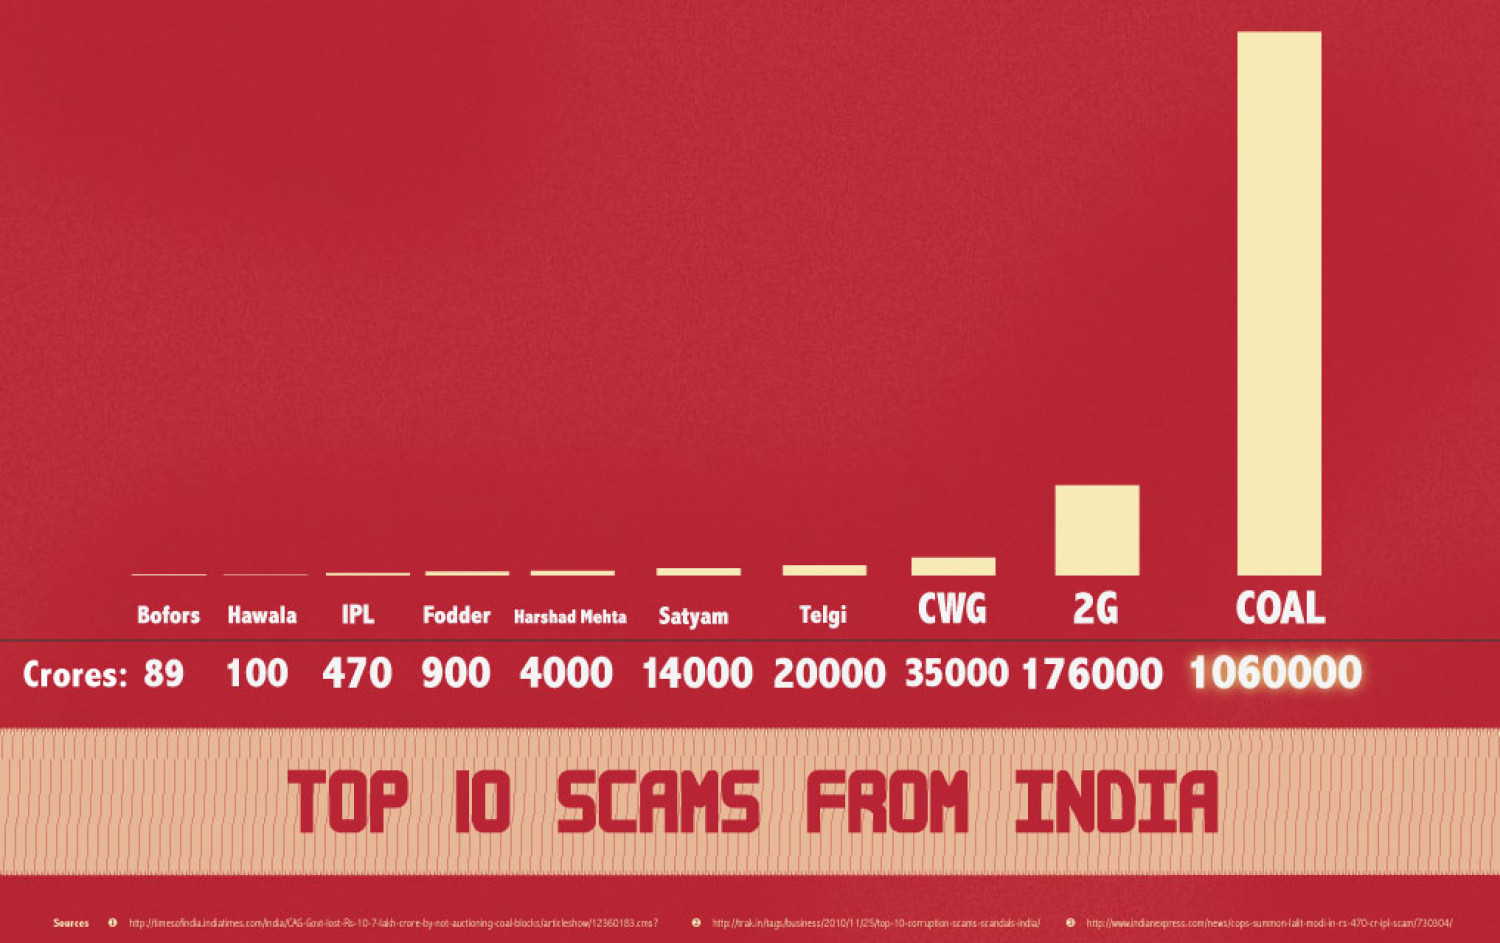 Top 10 scams from India Infographic